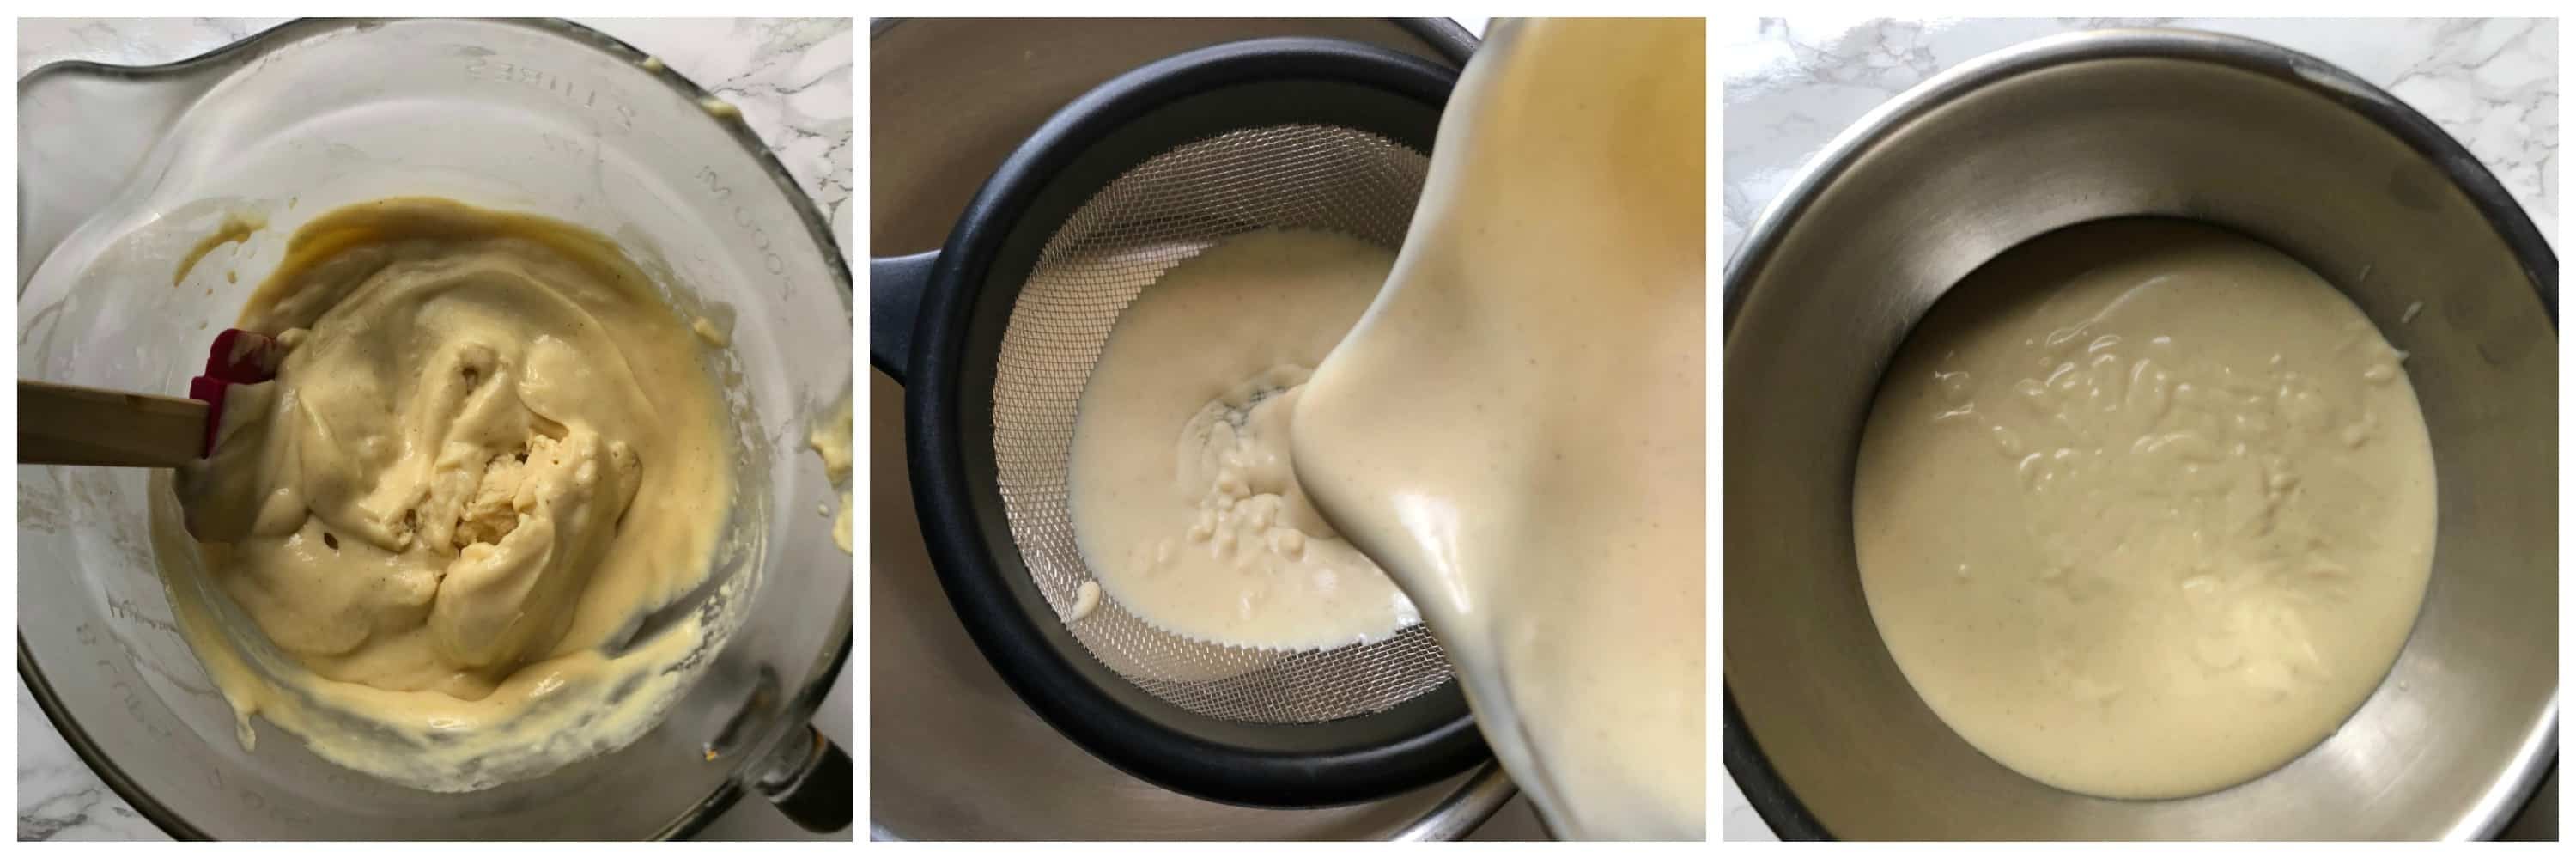 custard strained through a sieve